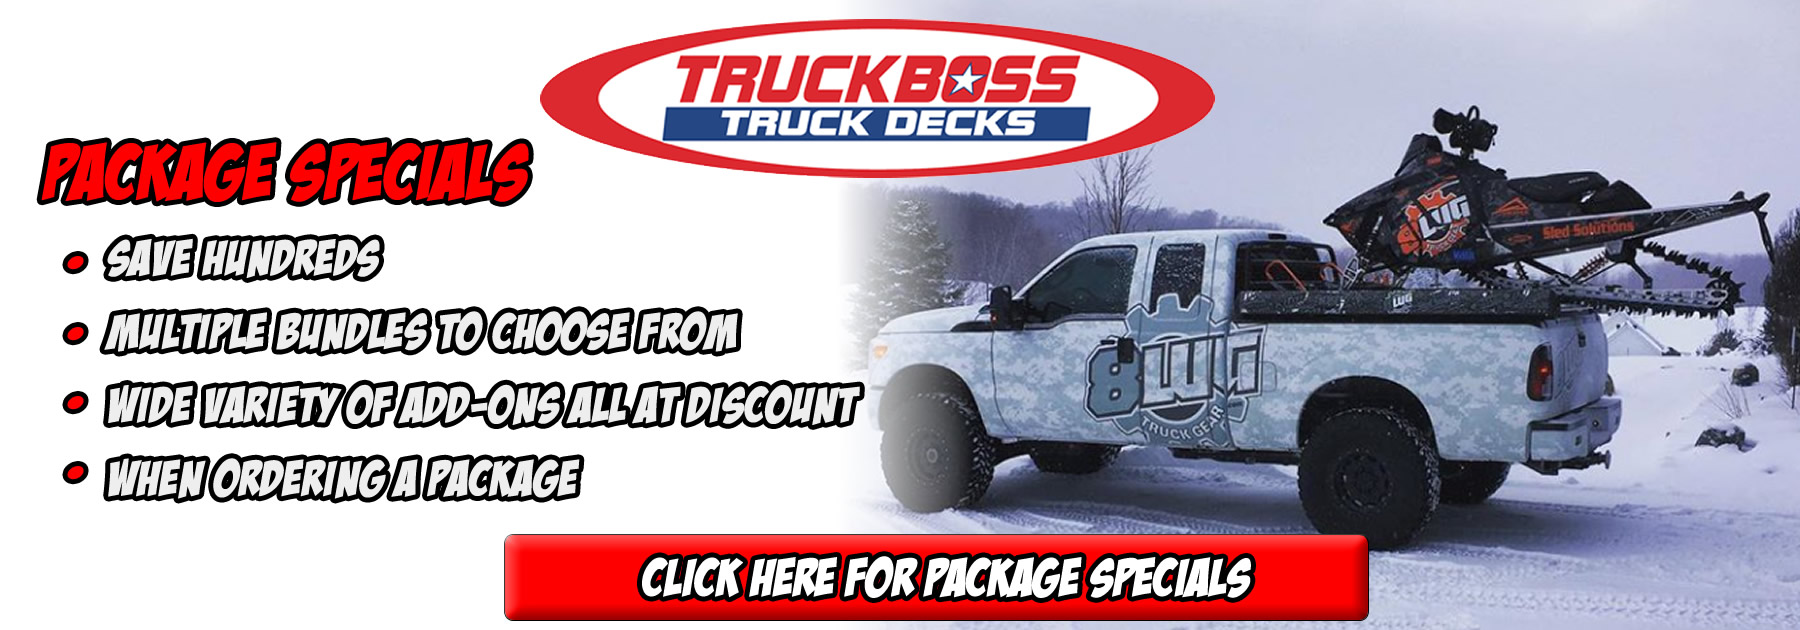 TruckBoss Sled ATV Jetski Decks at 8LUG Truck Gear